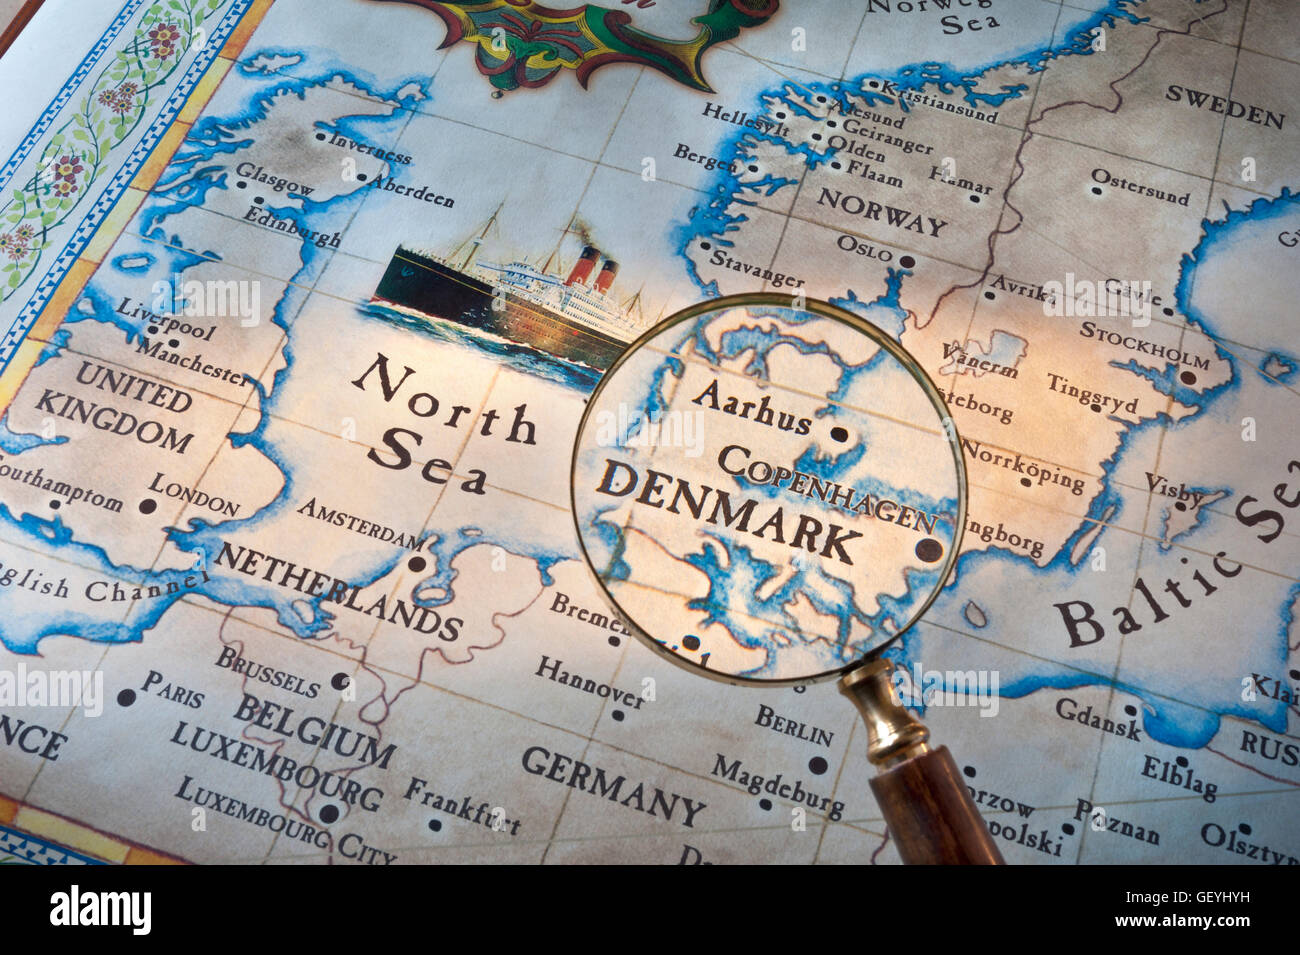 Old style map with magnifying glass over Denmark-Copenhagen-Aarhus. Cruise ship featured in North Sea with UK & - Stock Image